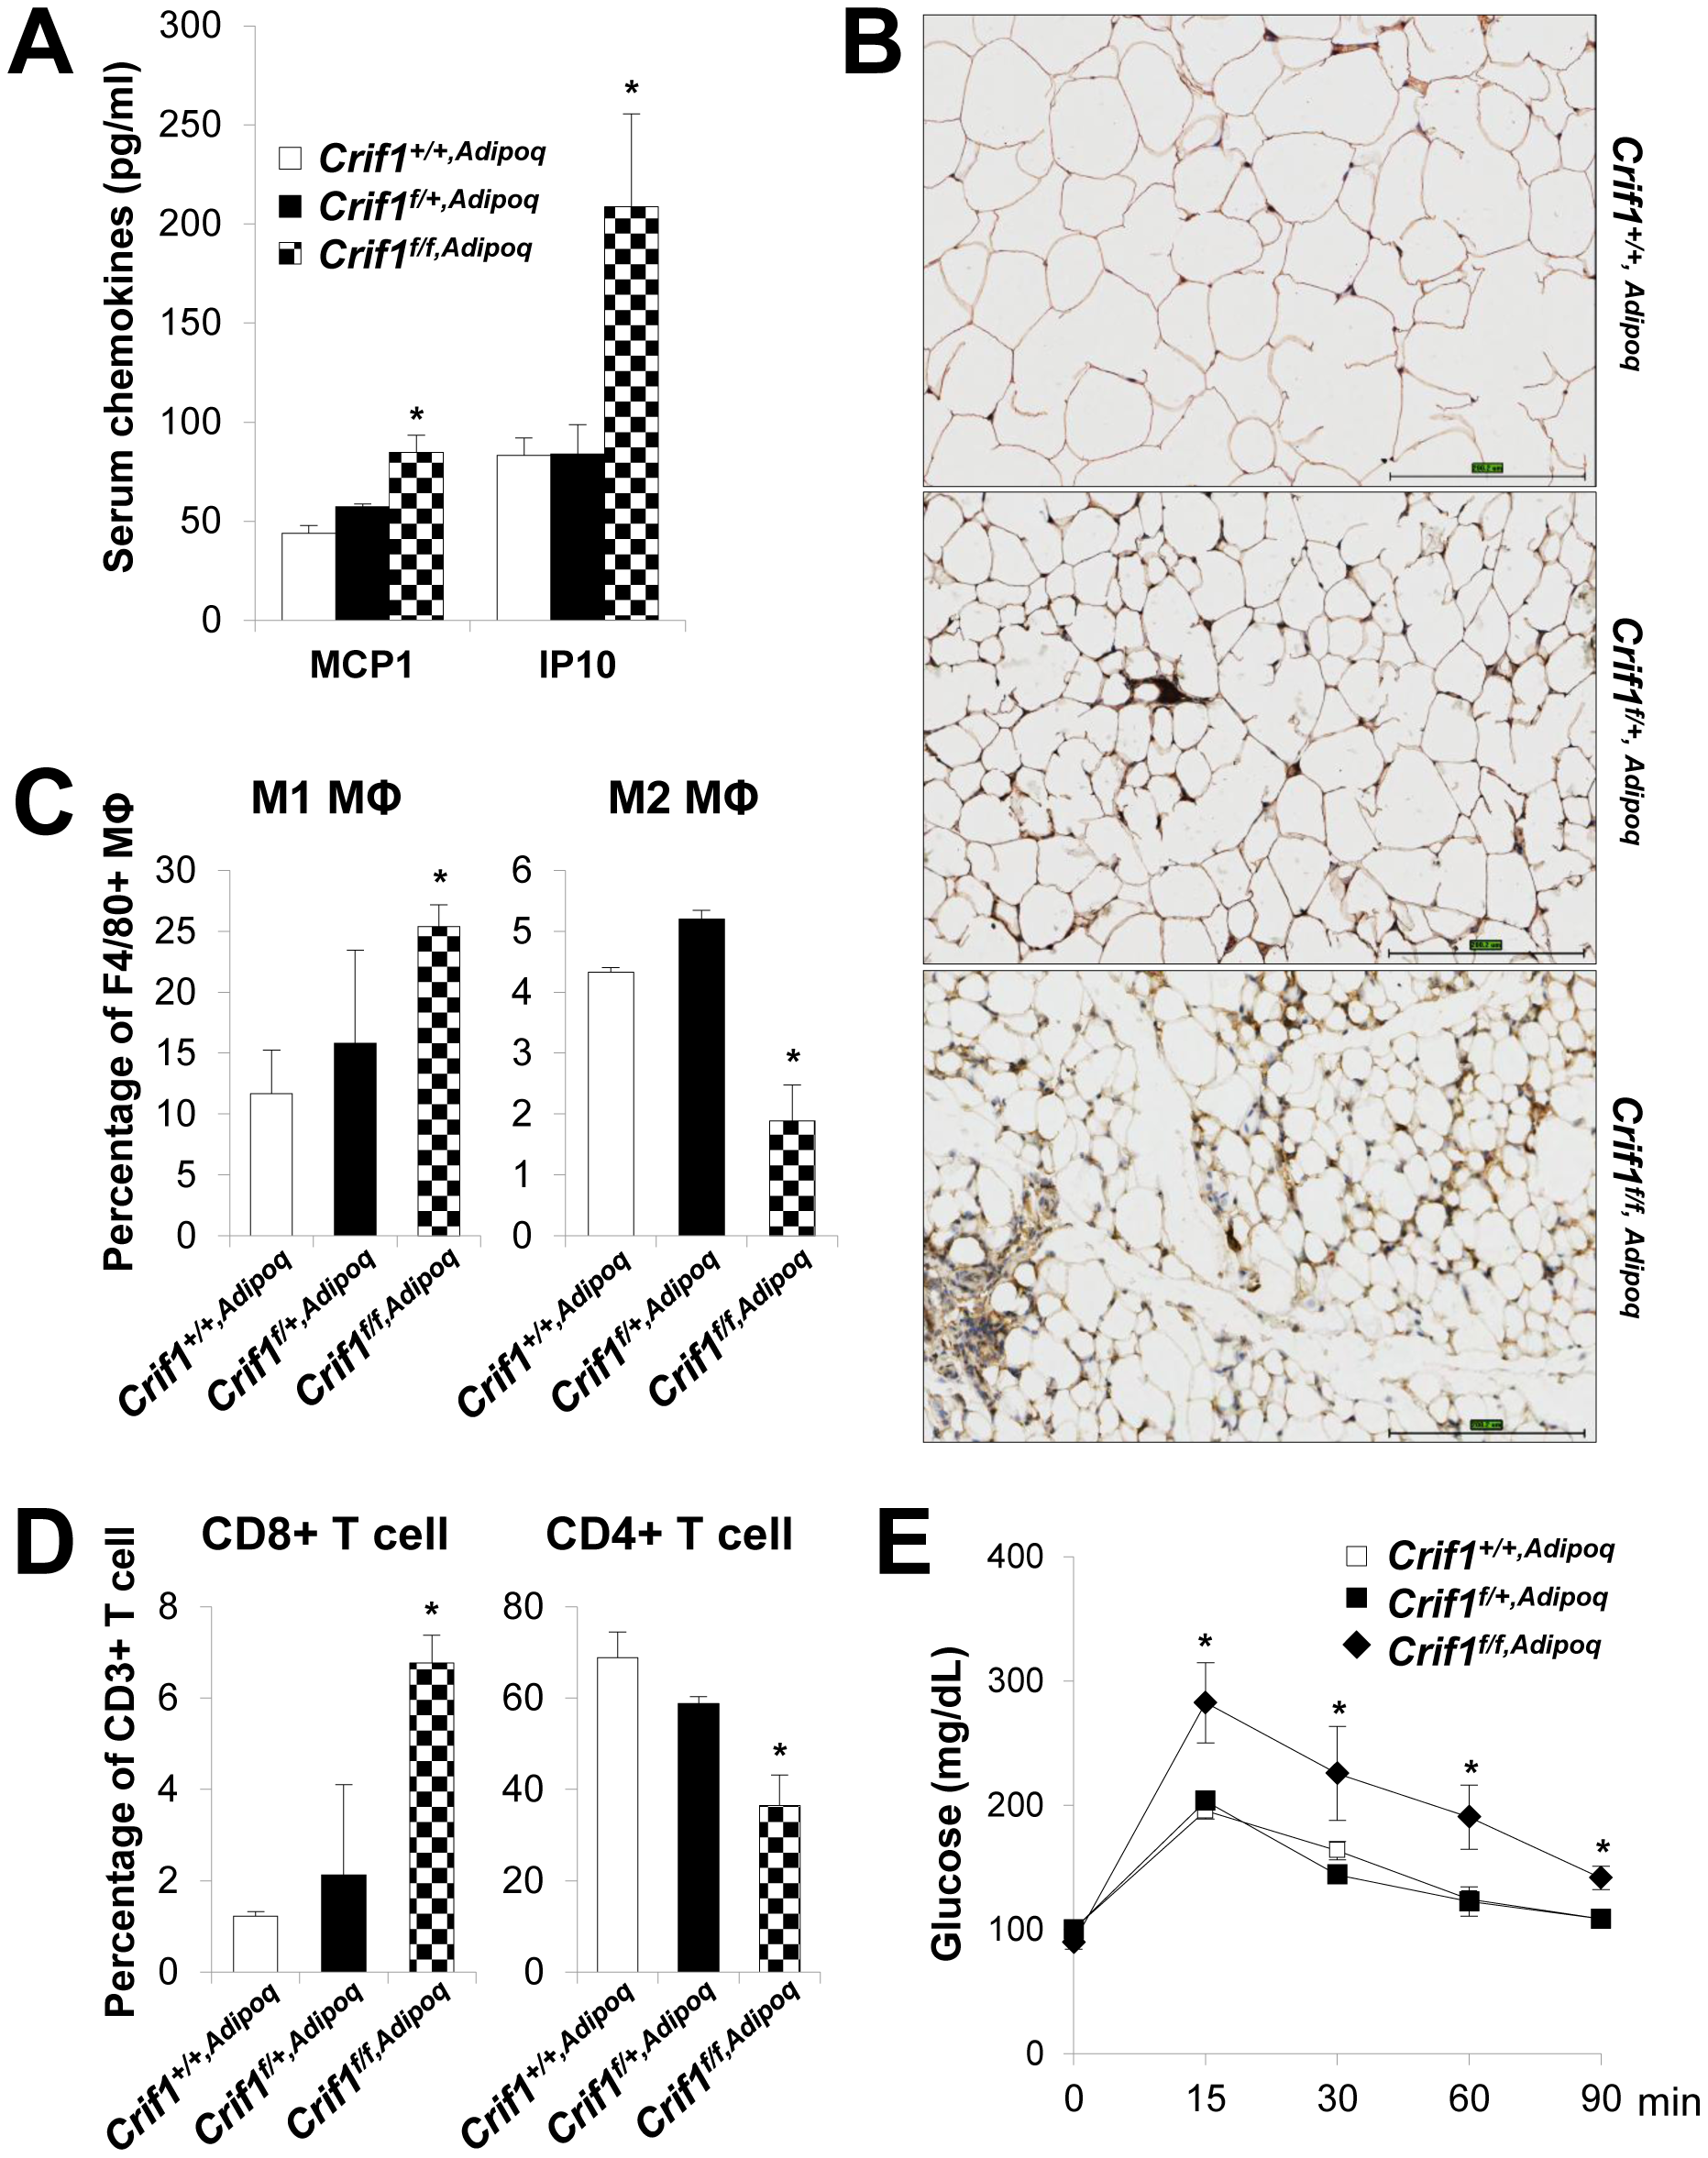 Recruitment of macrophages and T cells to adipose tissue in <i>Crif1<sup>f/f,Adipoq</sup></i> mice.